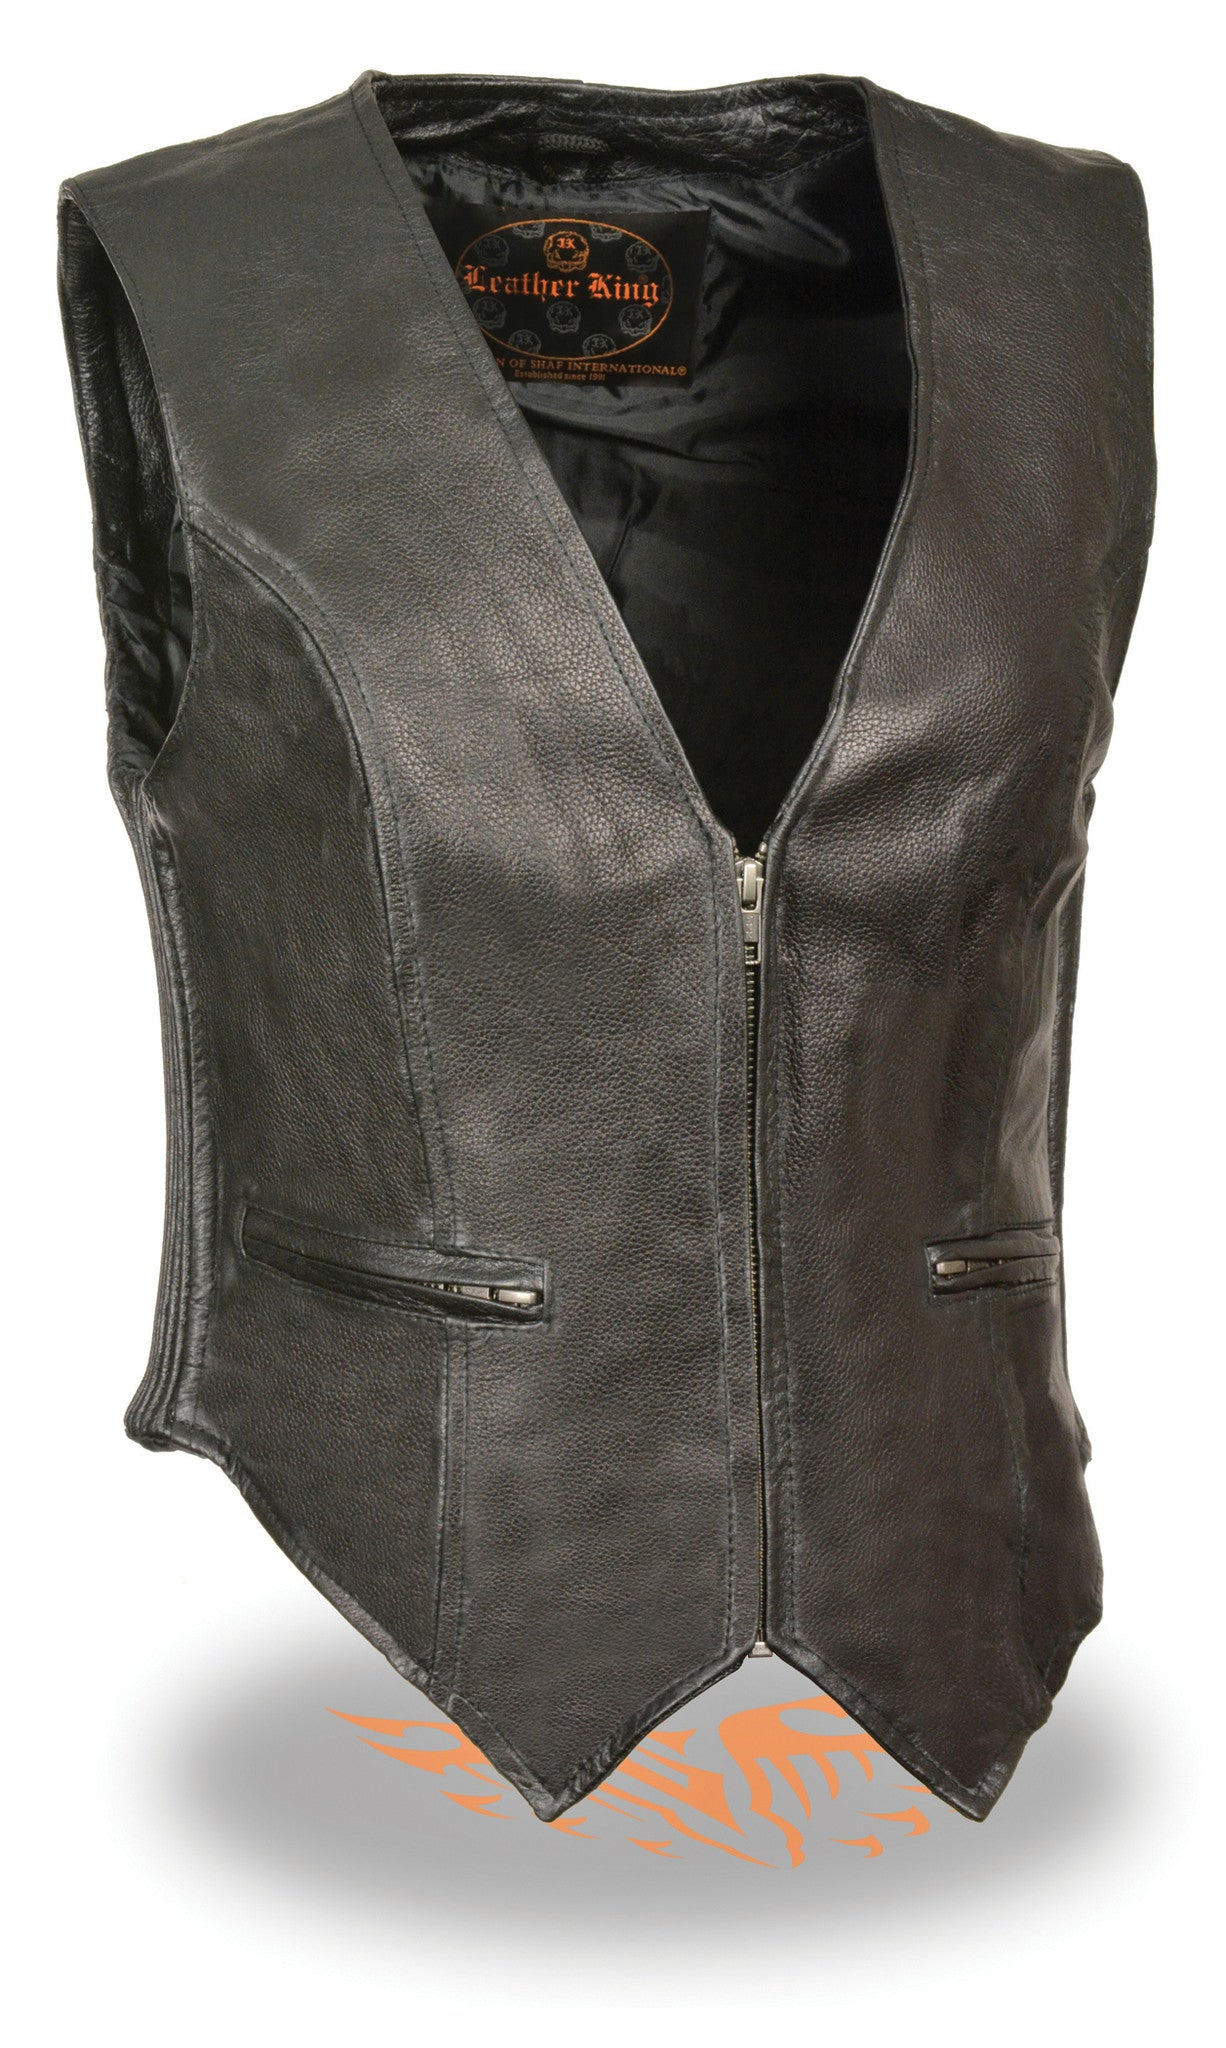 WOMEN'S RIDER LEATHER CLASSIC ZIPPER FRONT VEST SOFT LEATHER